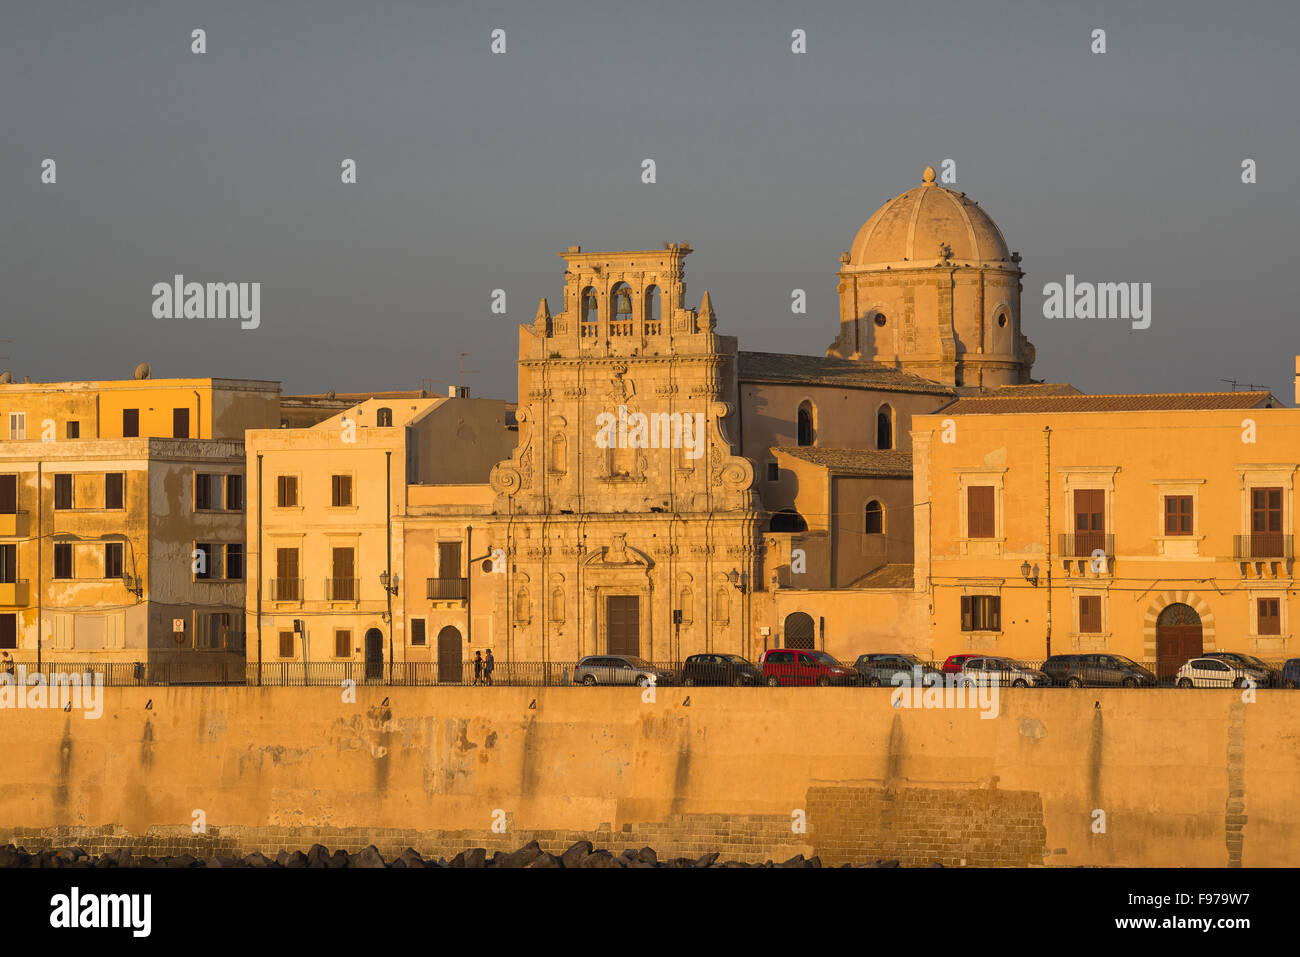 Syracuse Sicily, sunset view of the Church of Santo Spirito sited on the eastern sea wall of Ortigia island, Sicily. - Stock Image